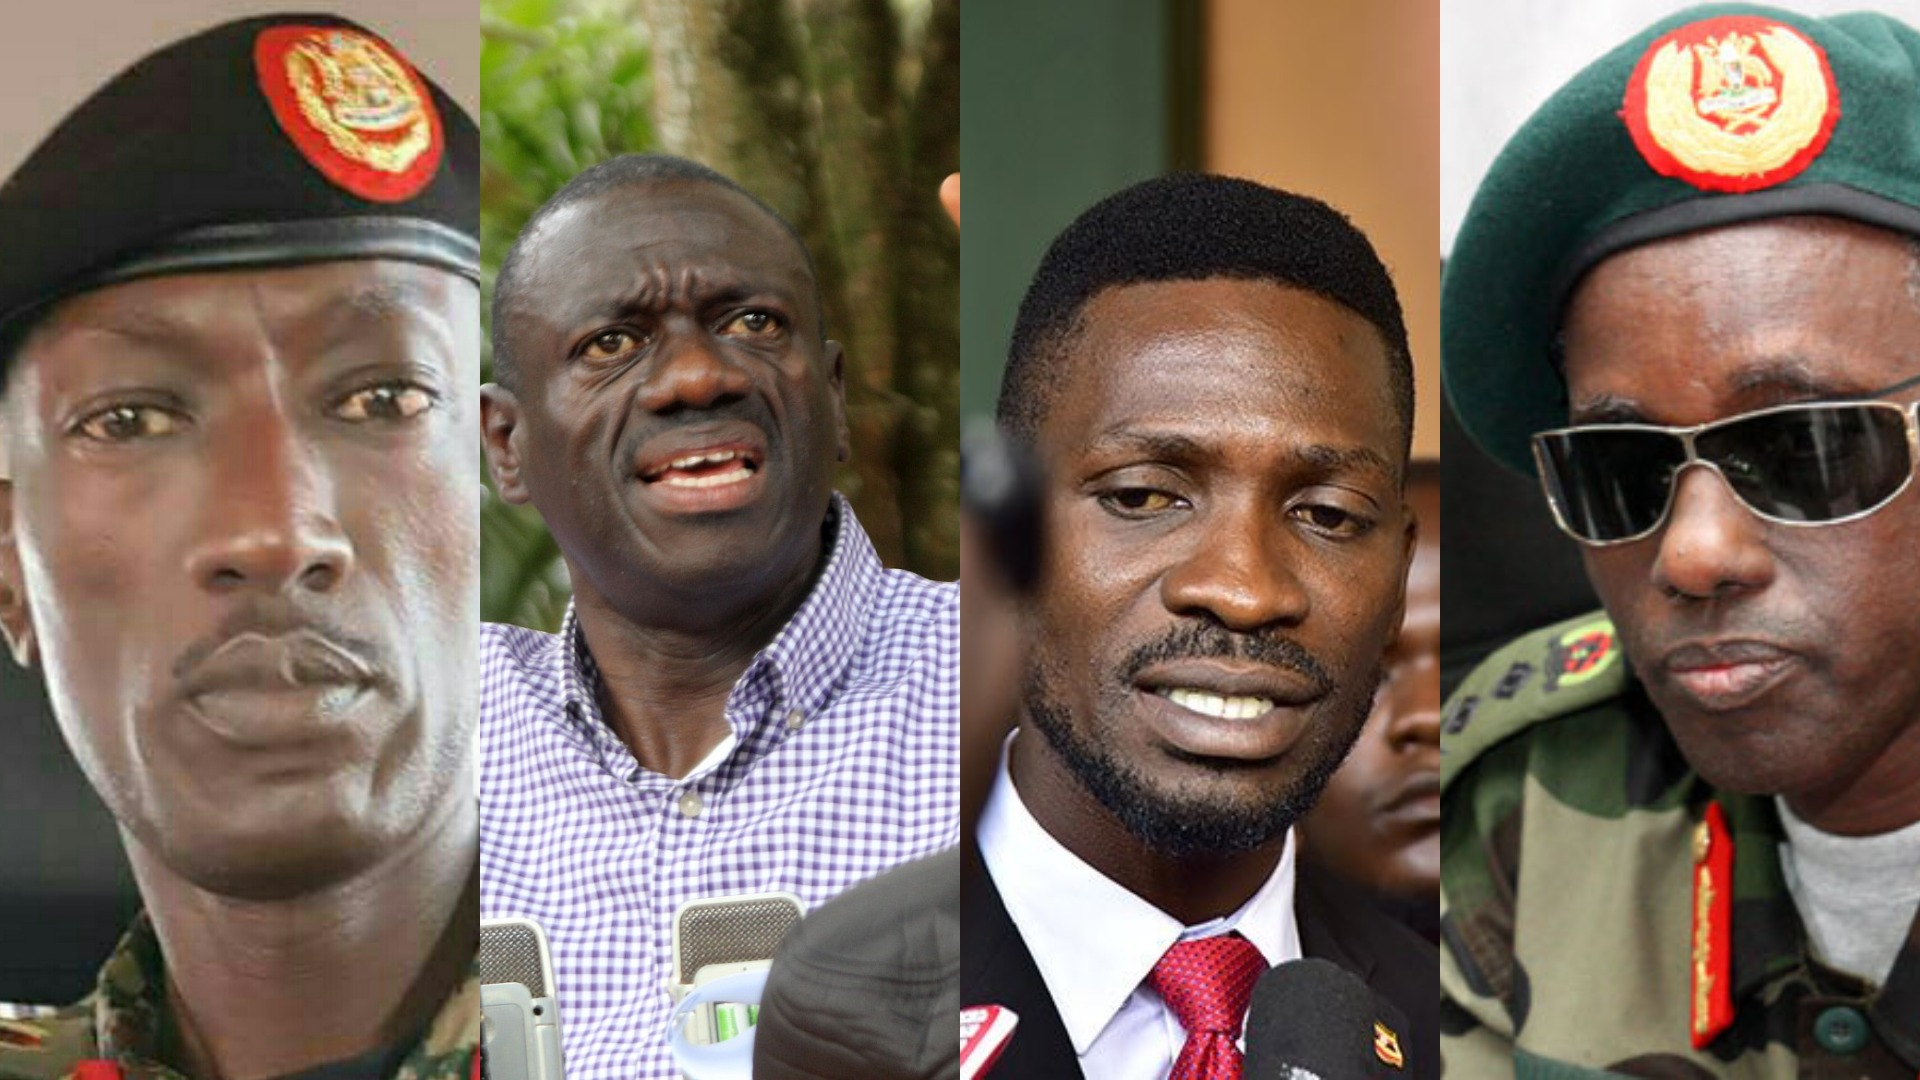 (L-R) CMI boss Brig Gen. Abel Kandiho, Opposition lynchpin, Dr. Kizza Besigye, Kyadondo MP Robert Kyagulanyi (Bobi Wine) and Security Minister Gen. Elly Tumwine. Heads of security and intelligence agencies on Thursday, May 9 met to discuss how to contain rallies by opposition leaders across the country. (PHOTOMONTAGE/PML Daily)